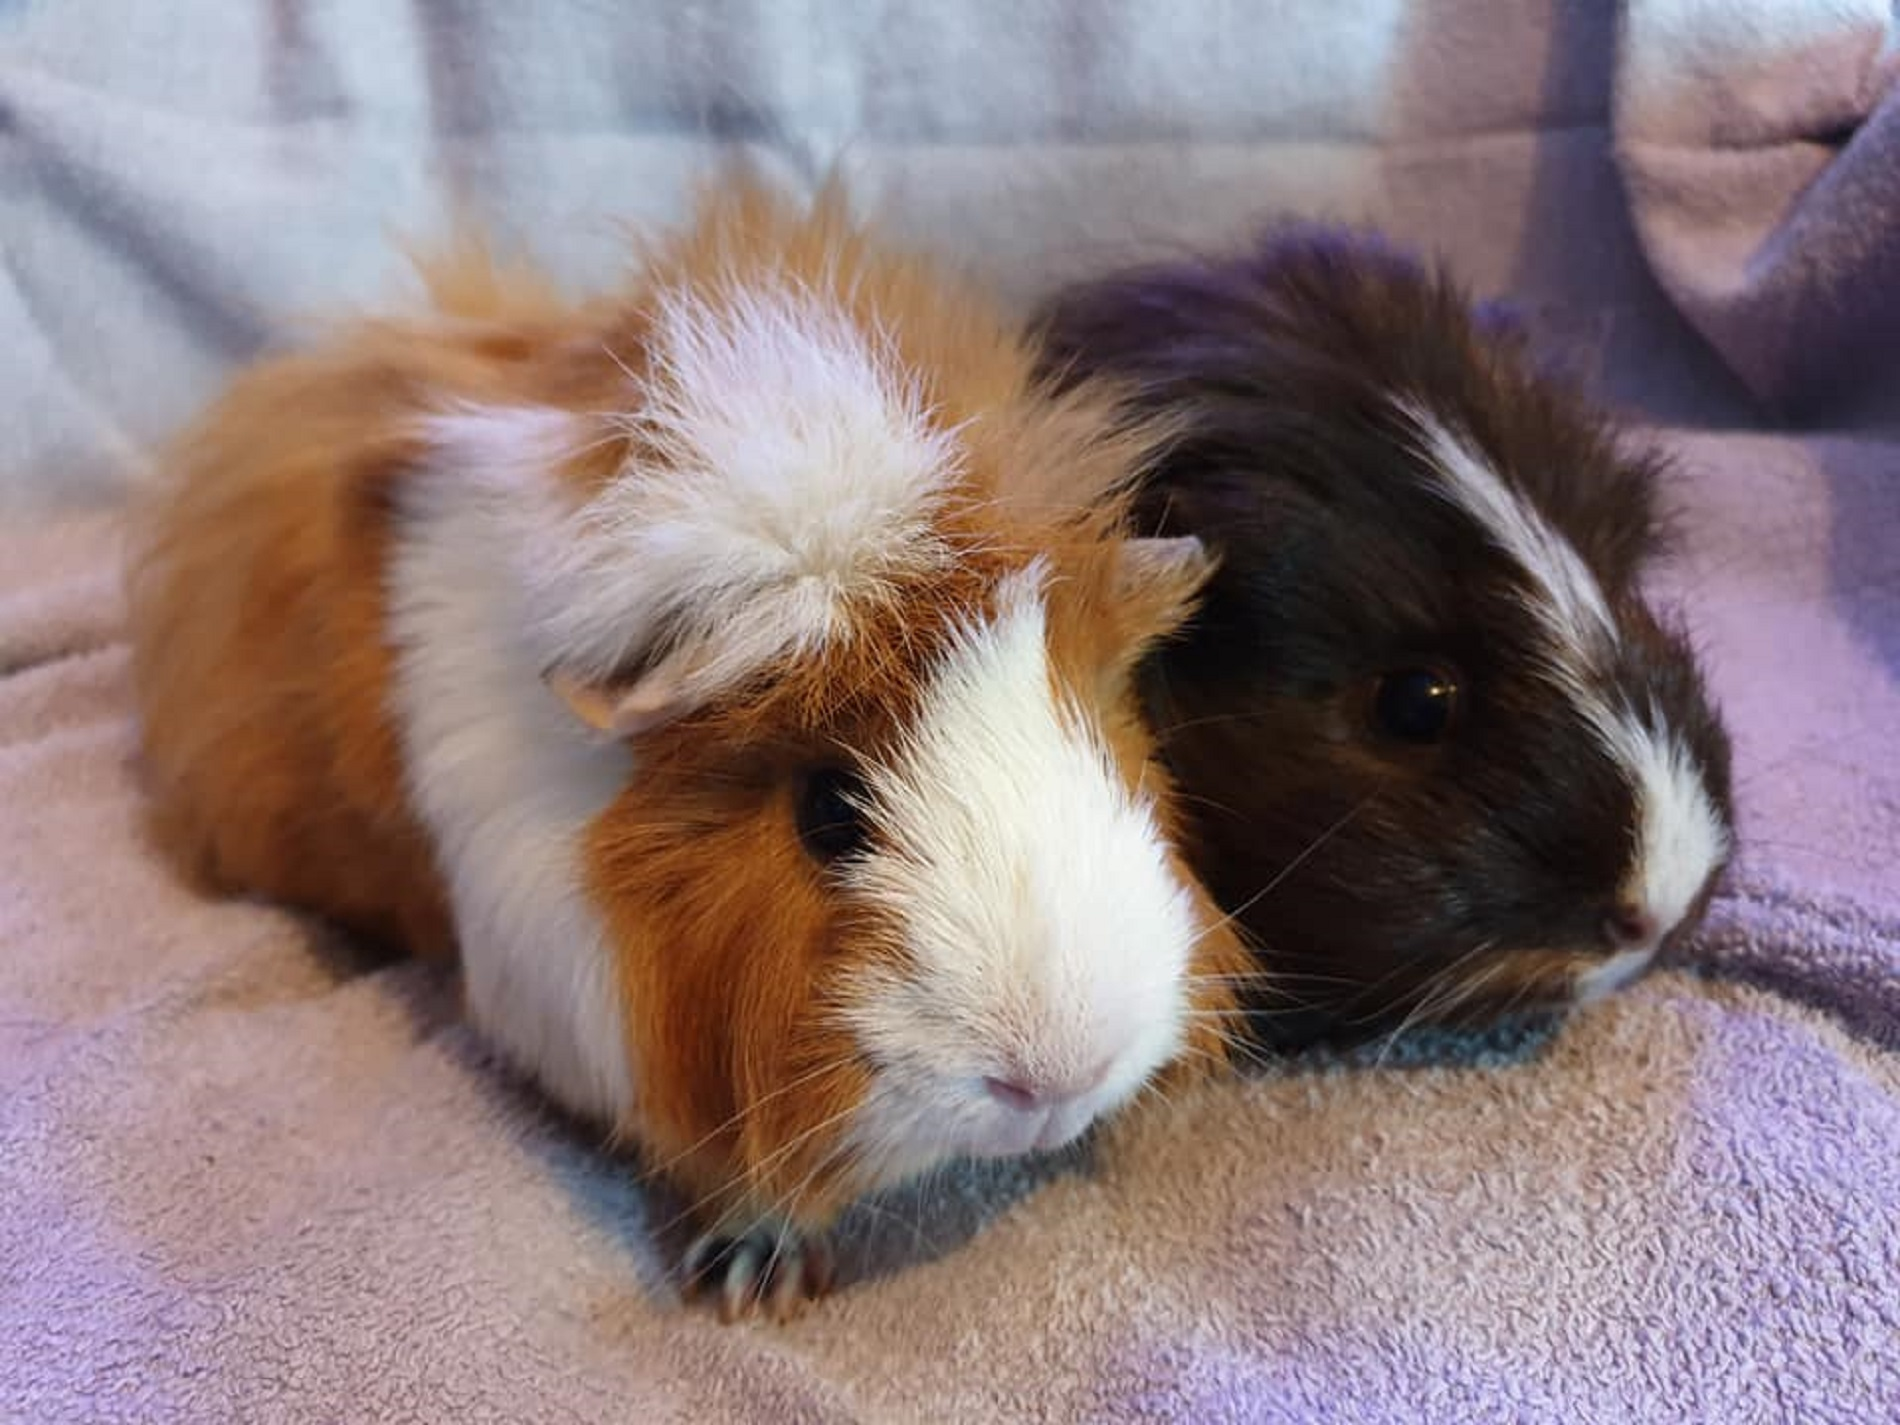 Caramel & Malteser September 20th 2019